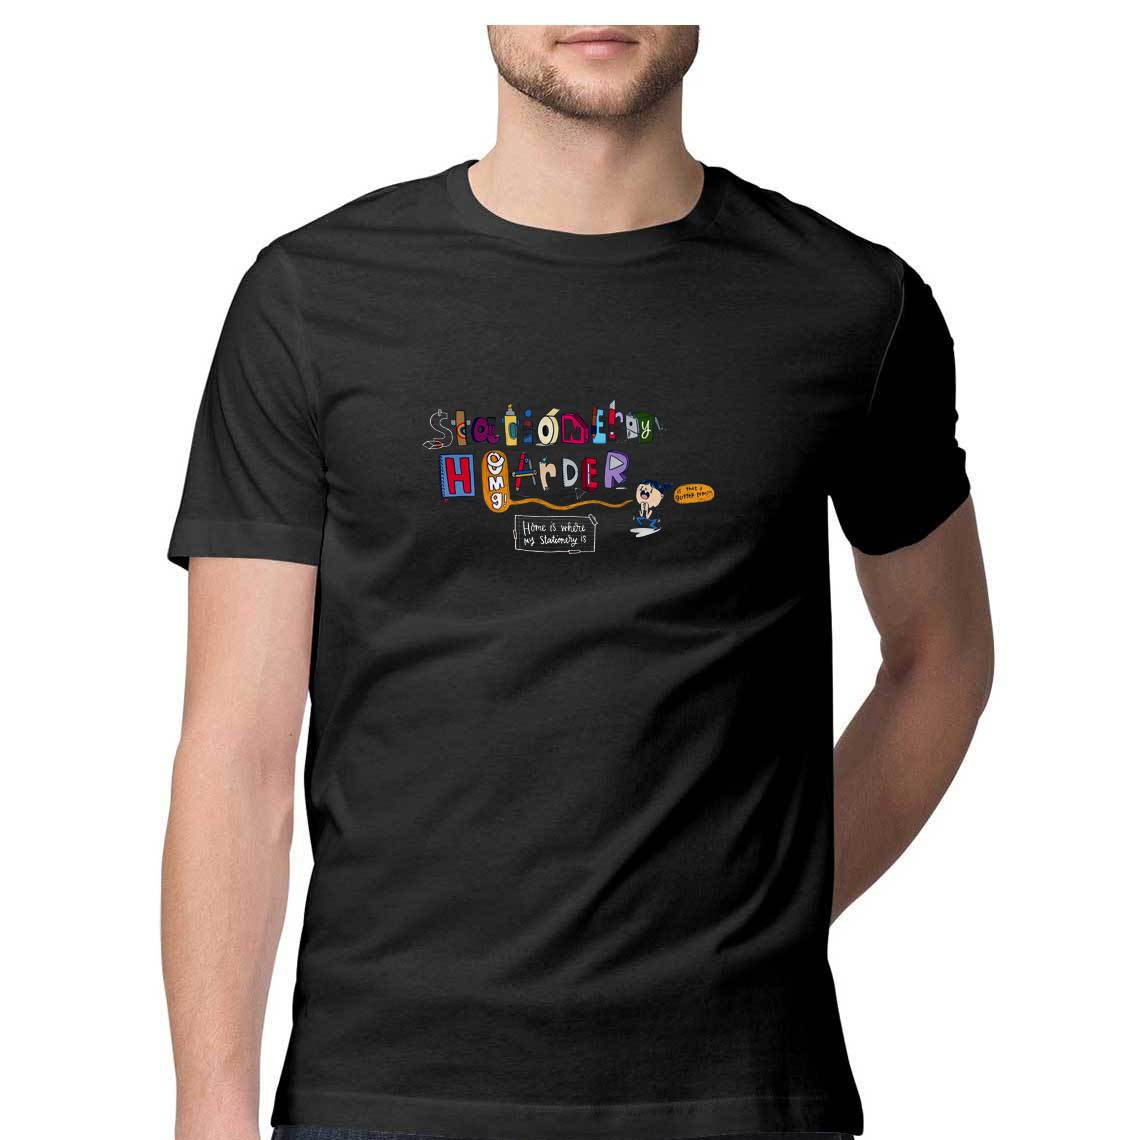 Stationery Hoarder T-shirt